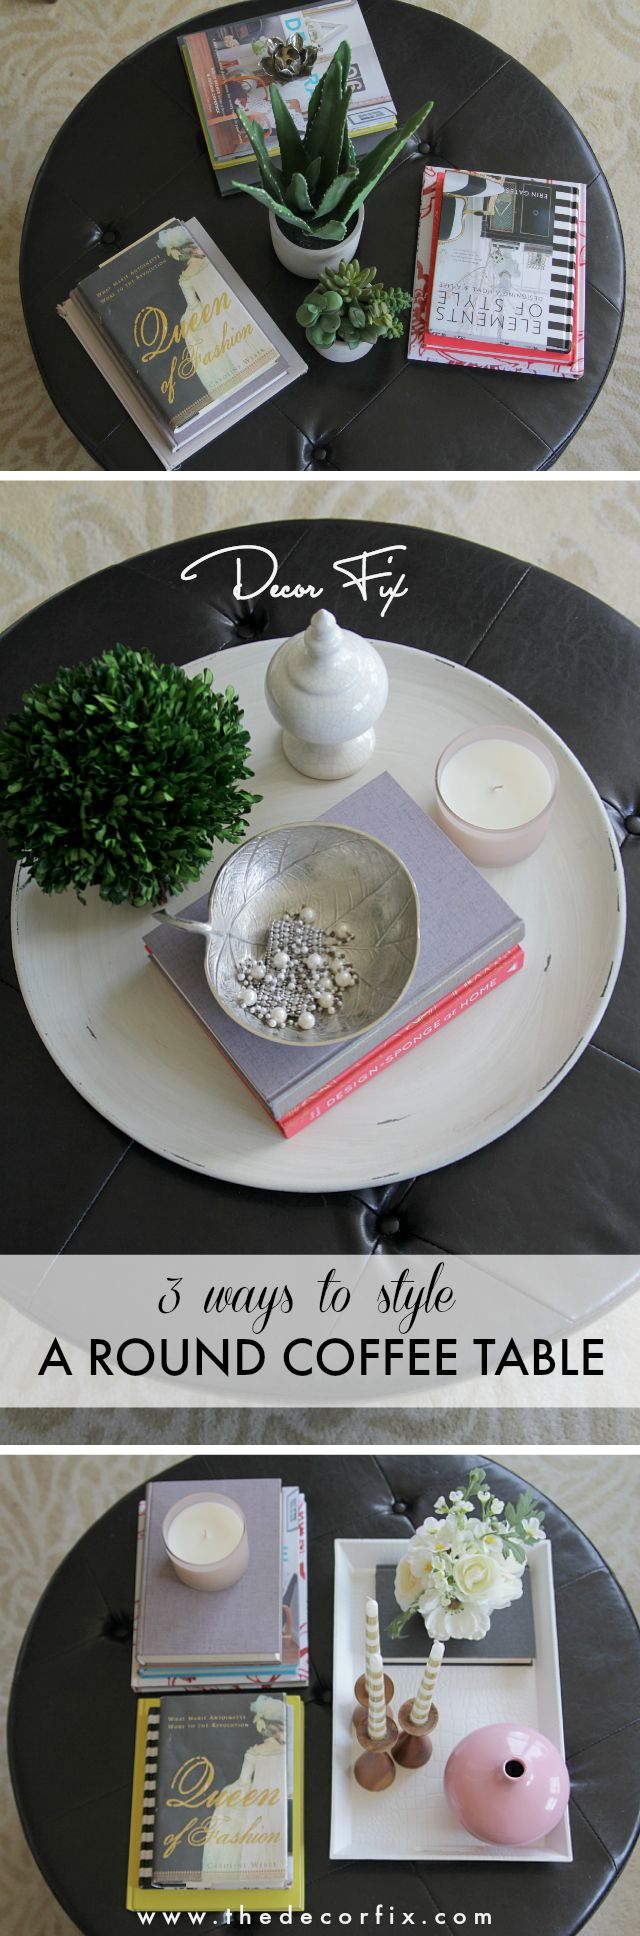 Learn 3 fail-proof ways to style a round coffee table from Heather Freeman.